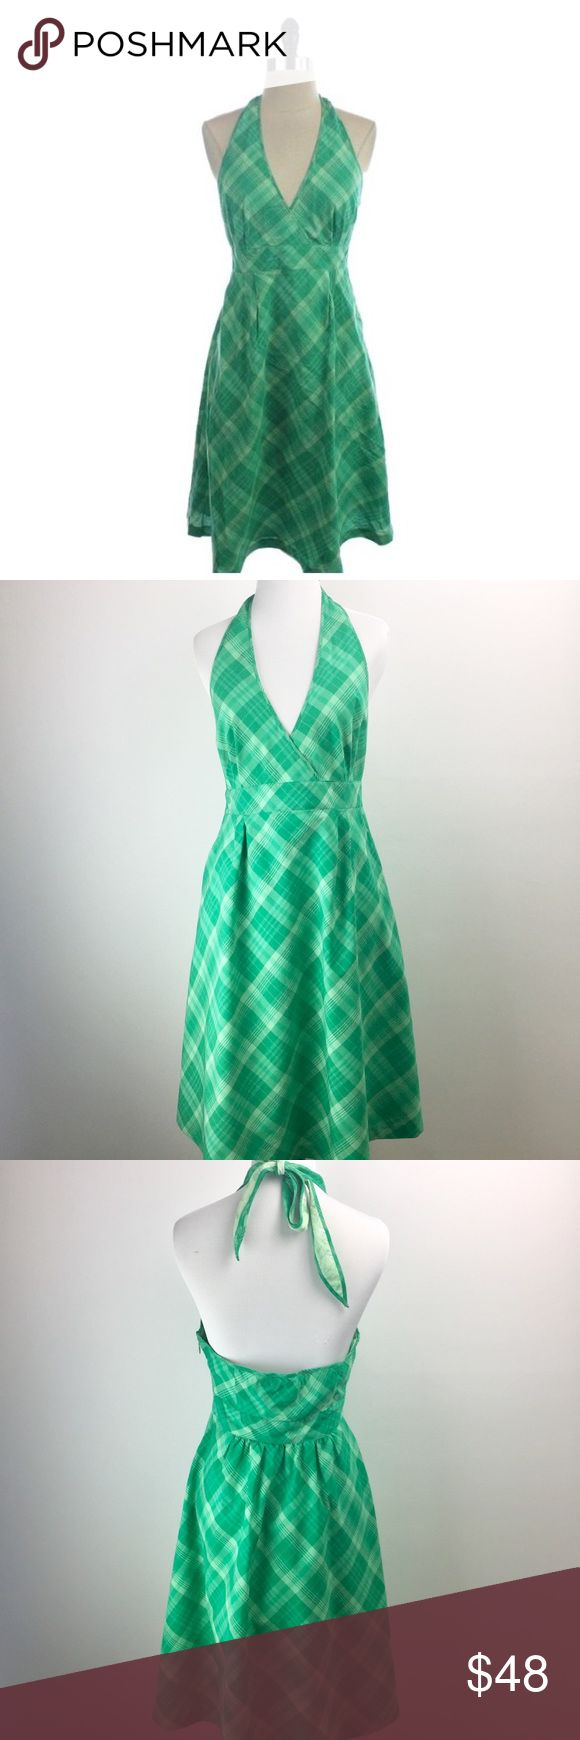 """🐳 Vineyards Vines Green Plaid Halter Dress Perfectly preppy-chic Vineyard Vines halter dress. Perfect for Spring and Summer! Pockets in the front! Ties at the back of neck. Hidden side zipper with a hook-eye closure. Lined. 100% cotton. Bright green plaid pattern. Skirt, from under bust to hem, is 24 1/2"""". In very good, pre-owned condition. ❌NO TRADES❌NO PAYPAL❌ Vineyard Vines Dresses"""